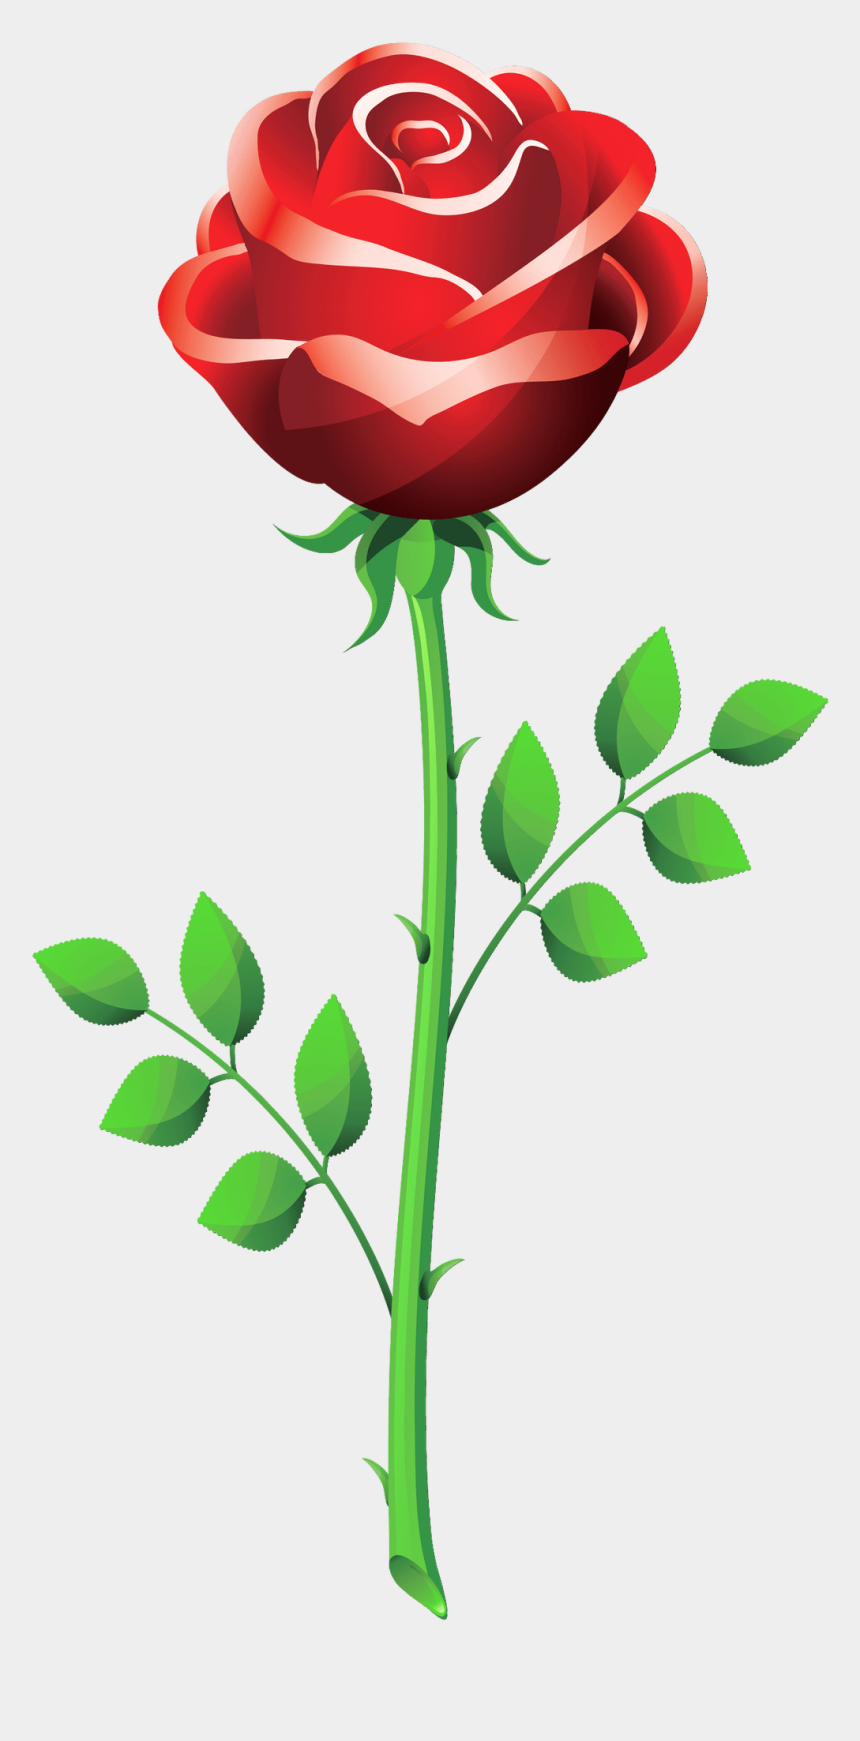 long stem rose clipart, Cartoons - Free Photo Editing Effects Master Effetcs Vector Rose - Rose Propose Image Download